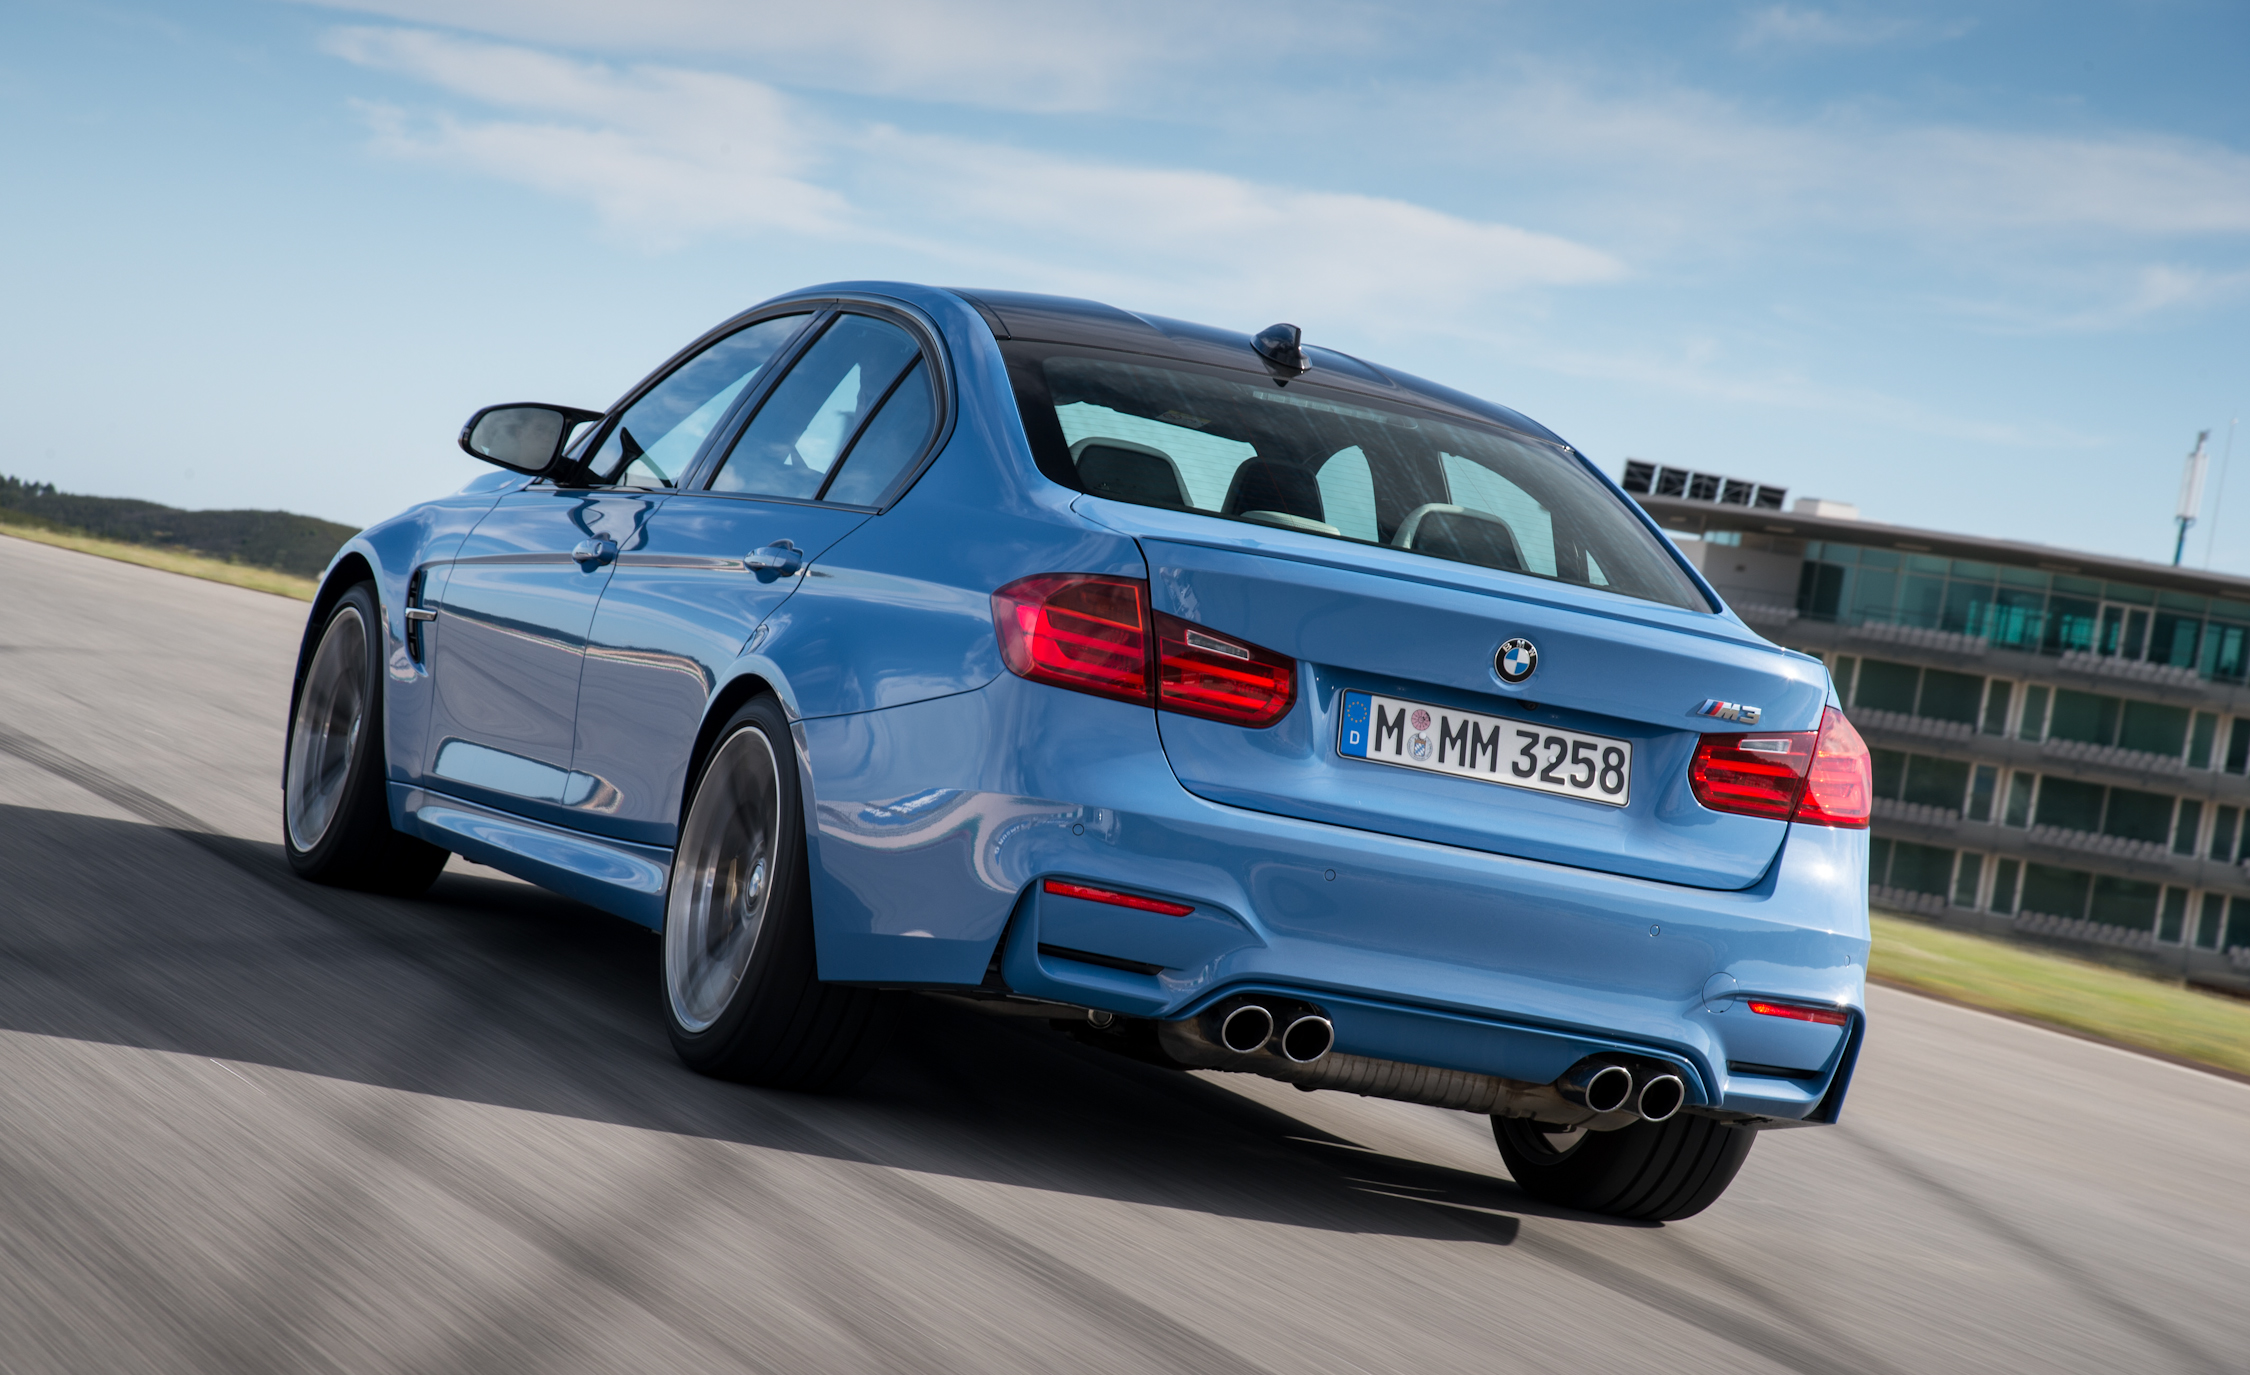 2015 BMW M3 Performance Rear and Side View